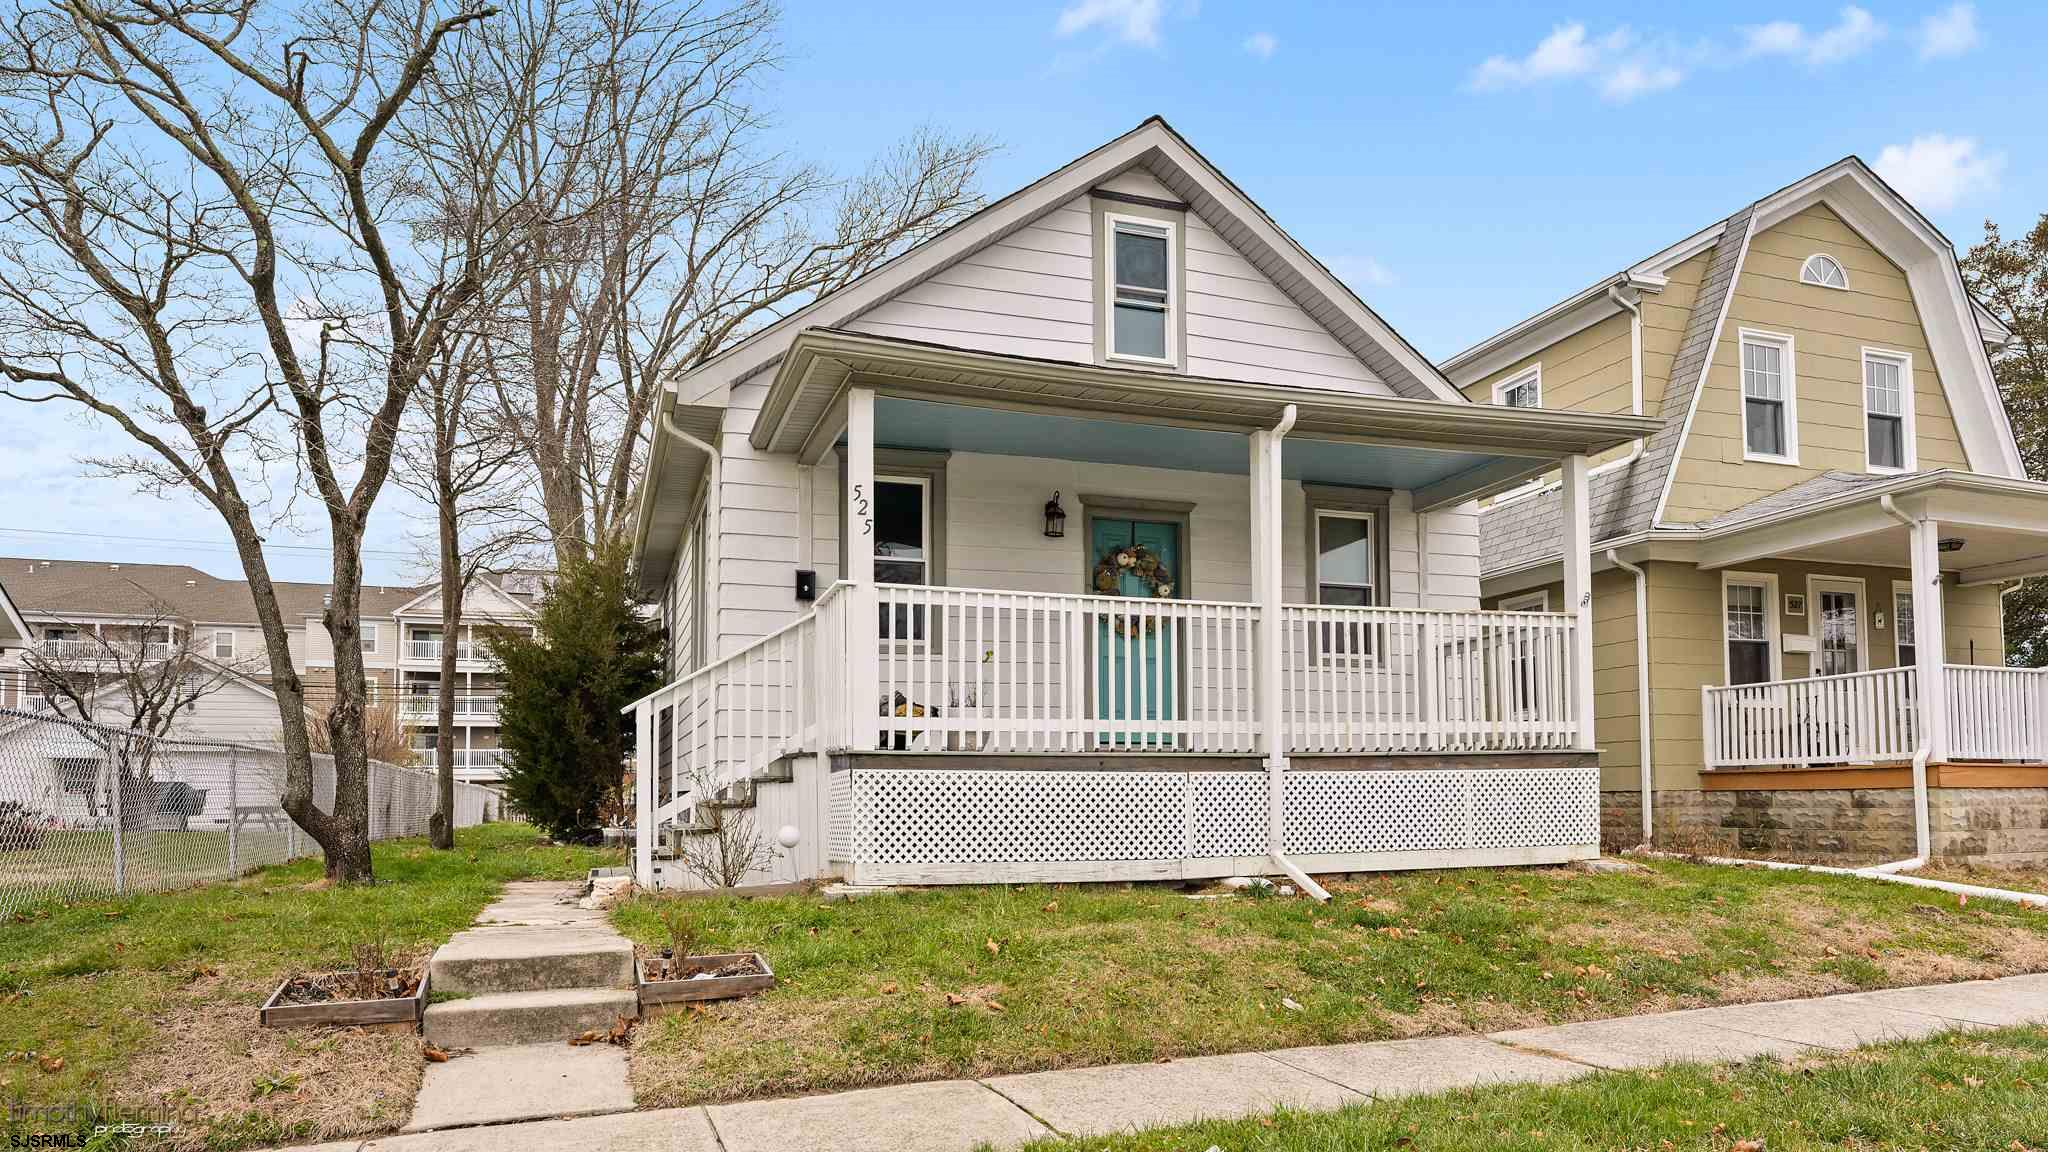 Cozy Rancher nestled into a quiet street in Egg Harbor City. This 2 Bedroom, 1 Full Bathroom home fe